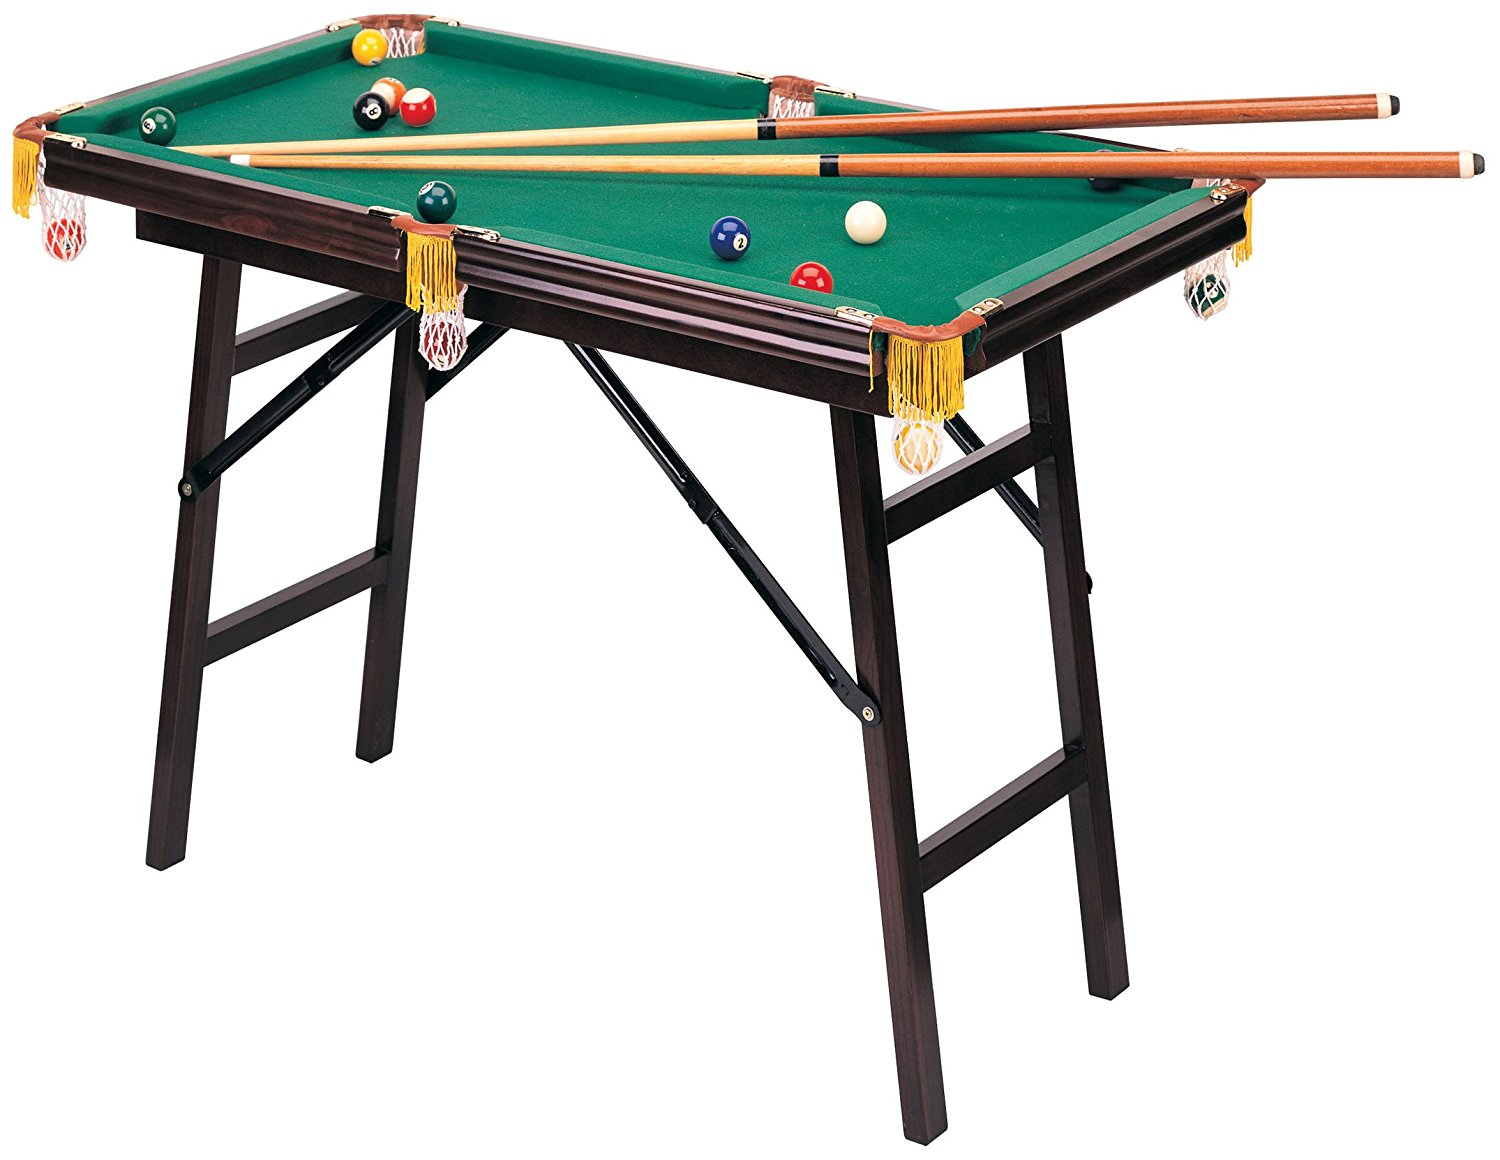 chh mini folding pool table image